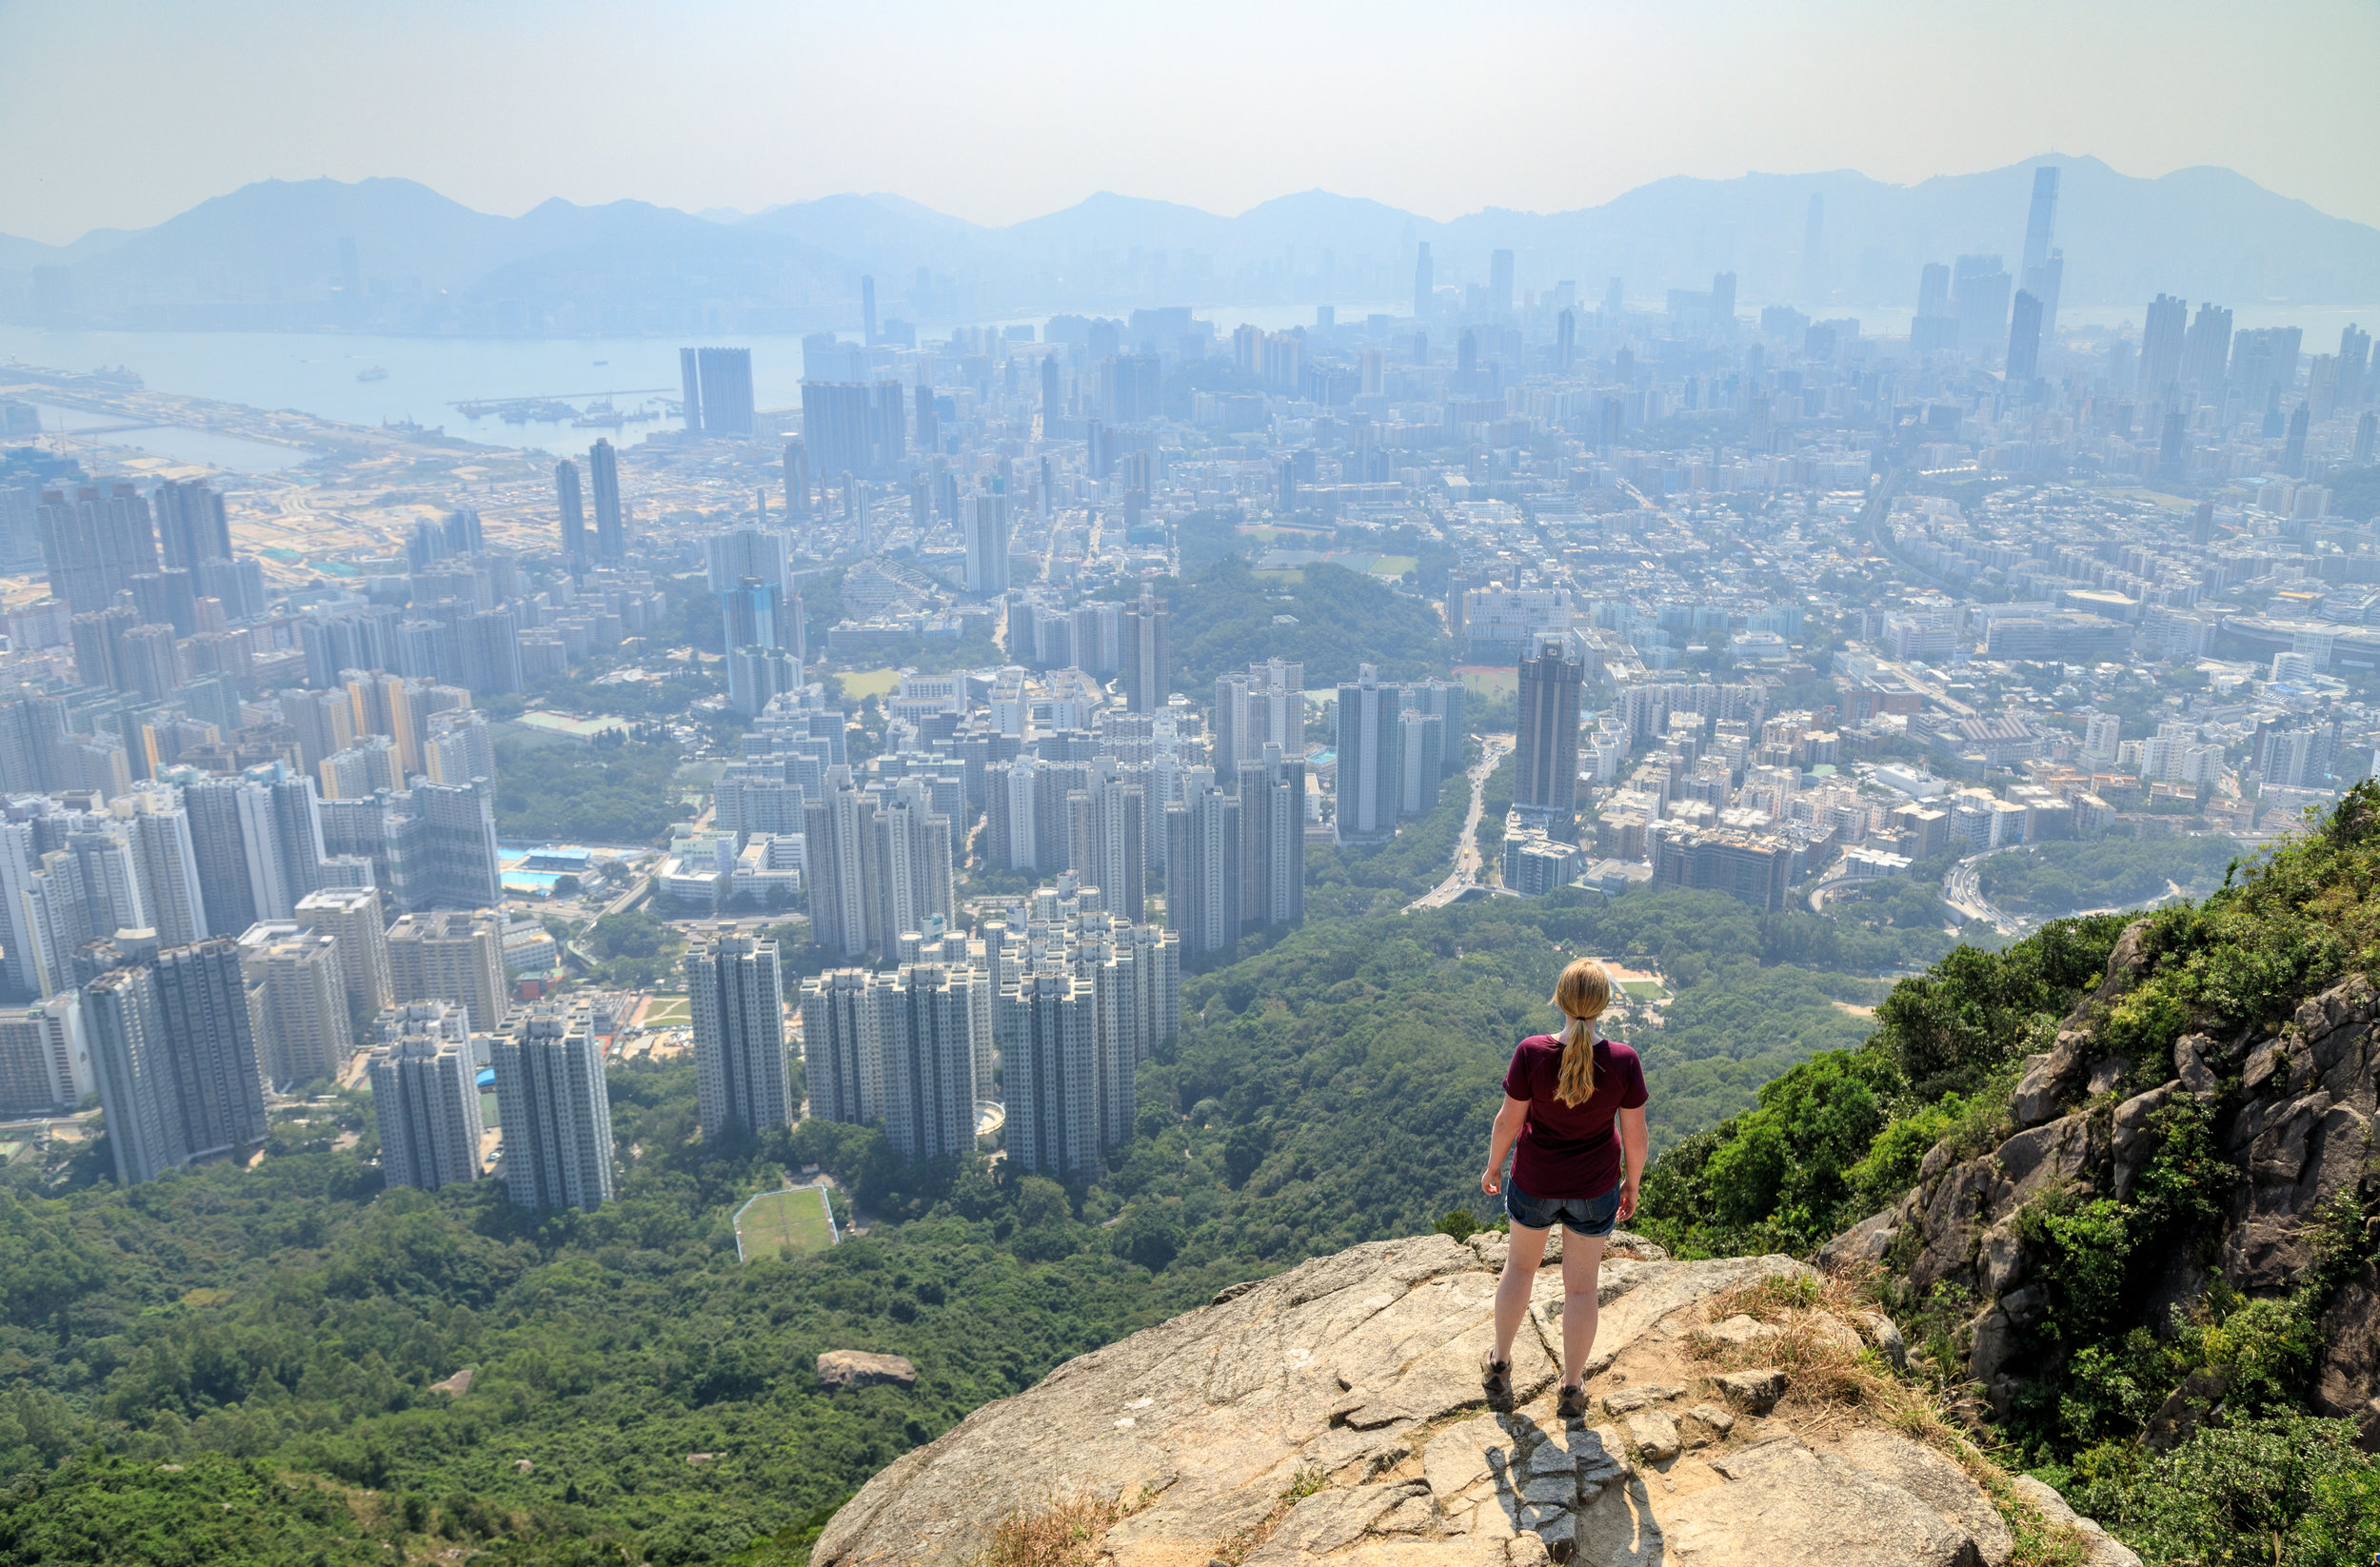 Instagrammable spots in Hong Kong: Lion Rock Peak